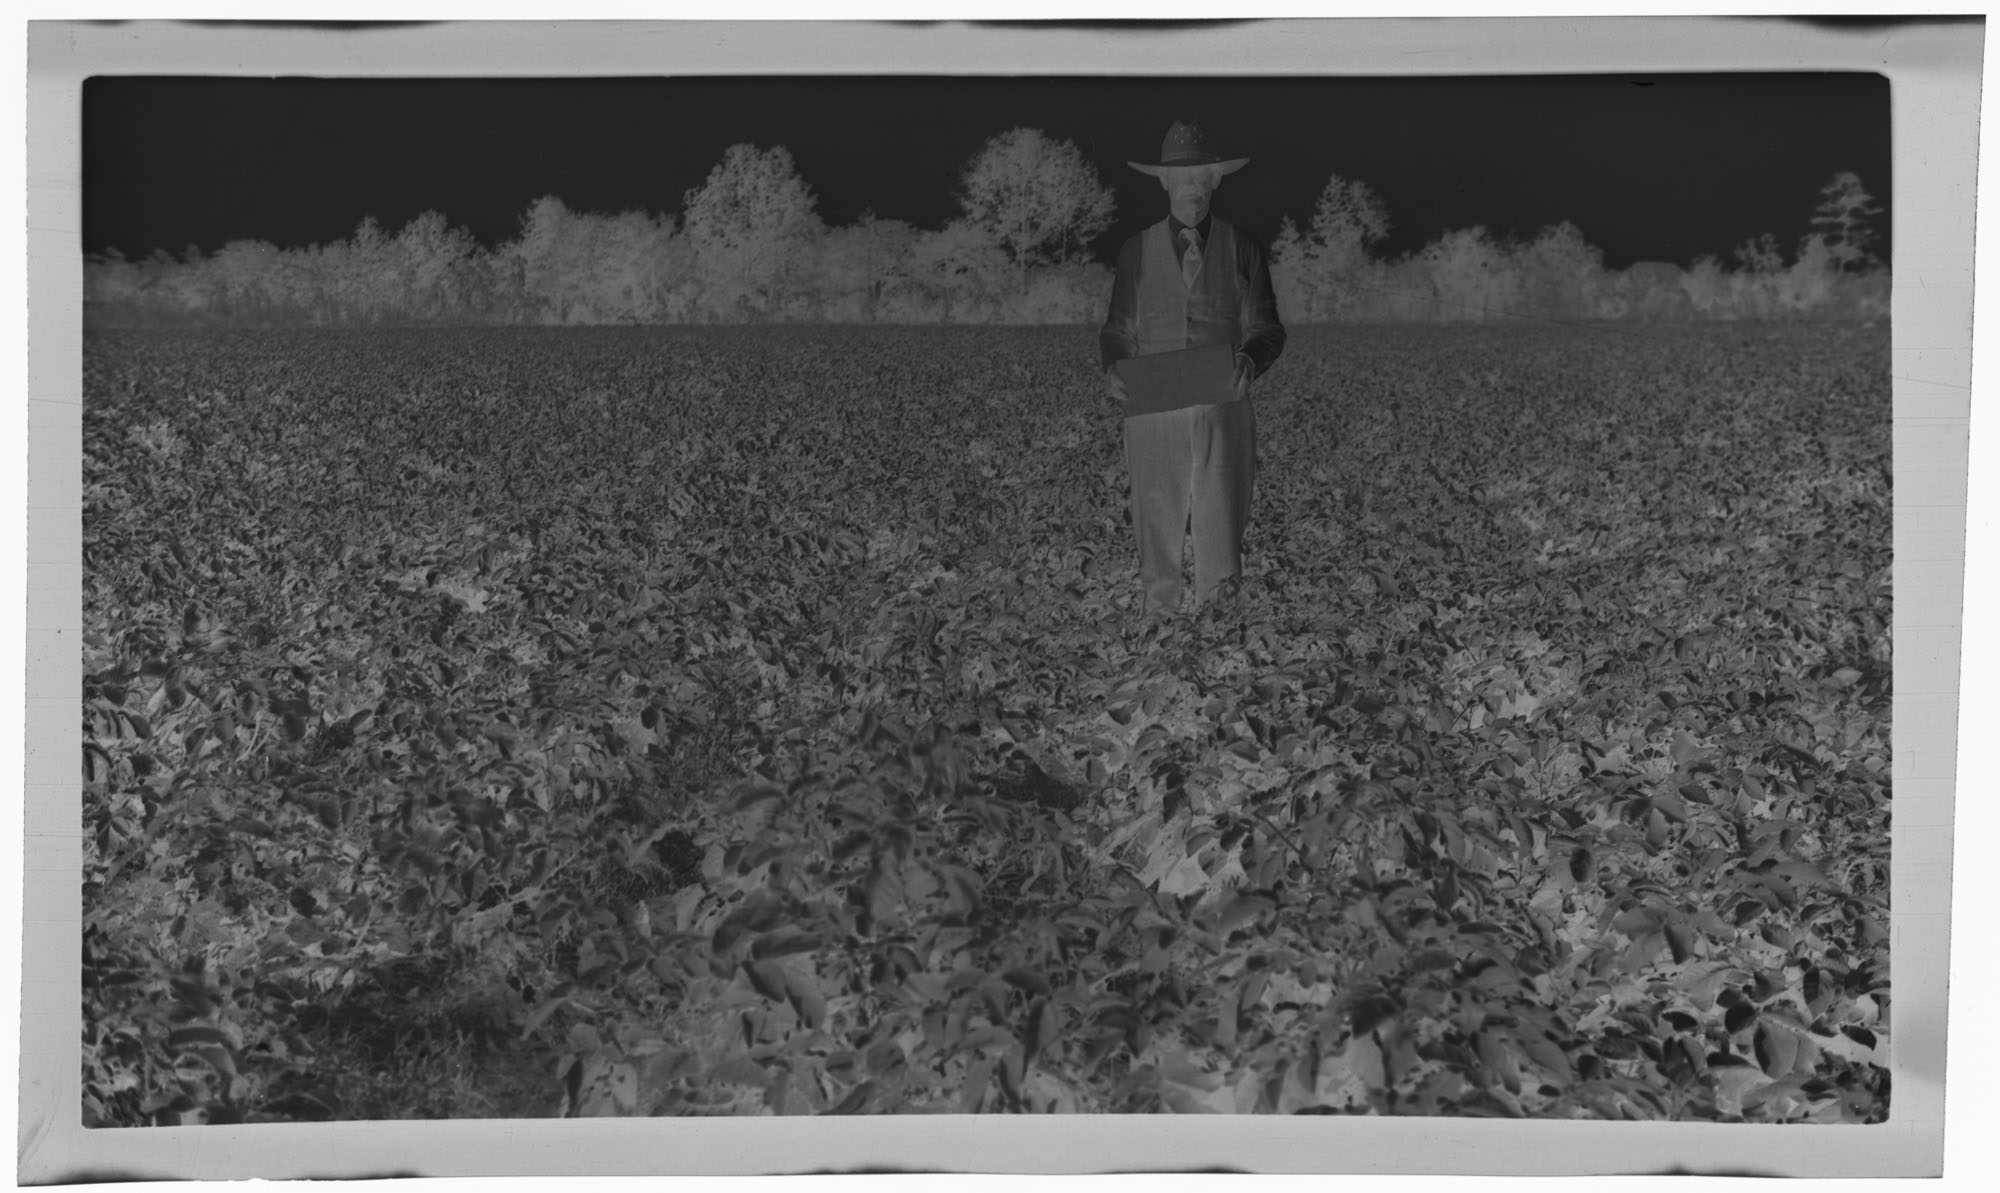 Negative of Man with Illegible Sign in Field